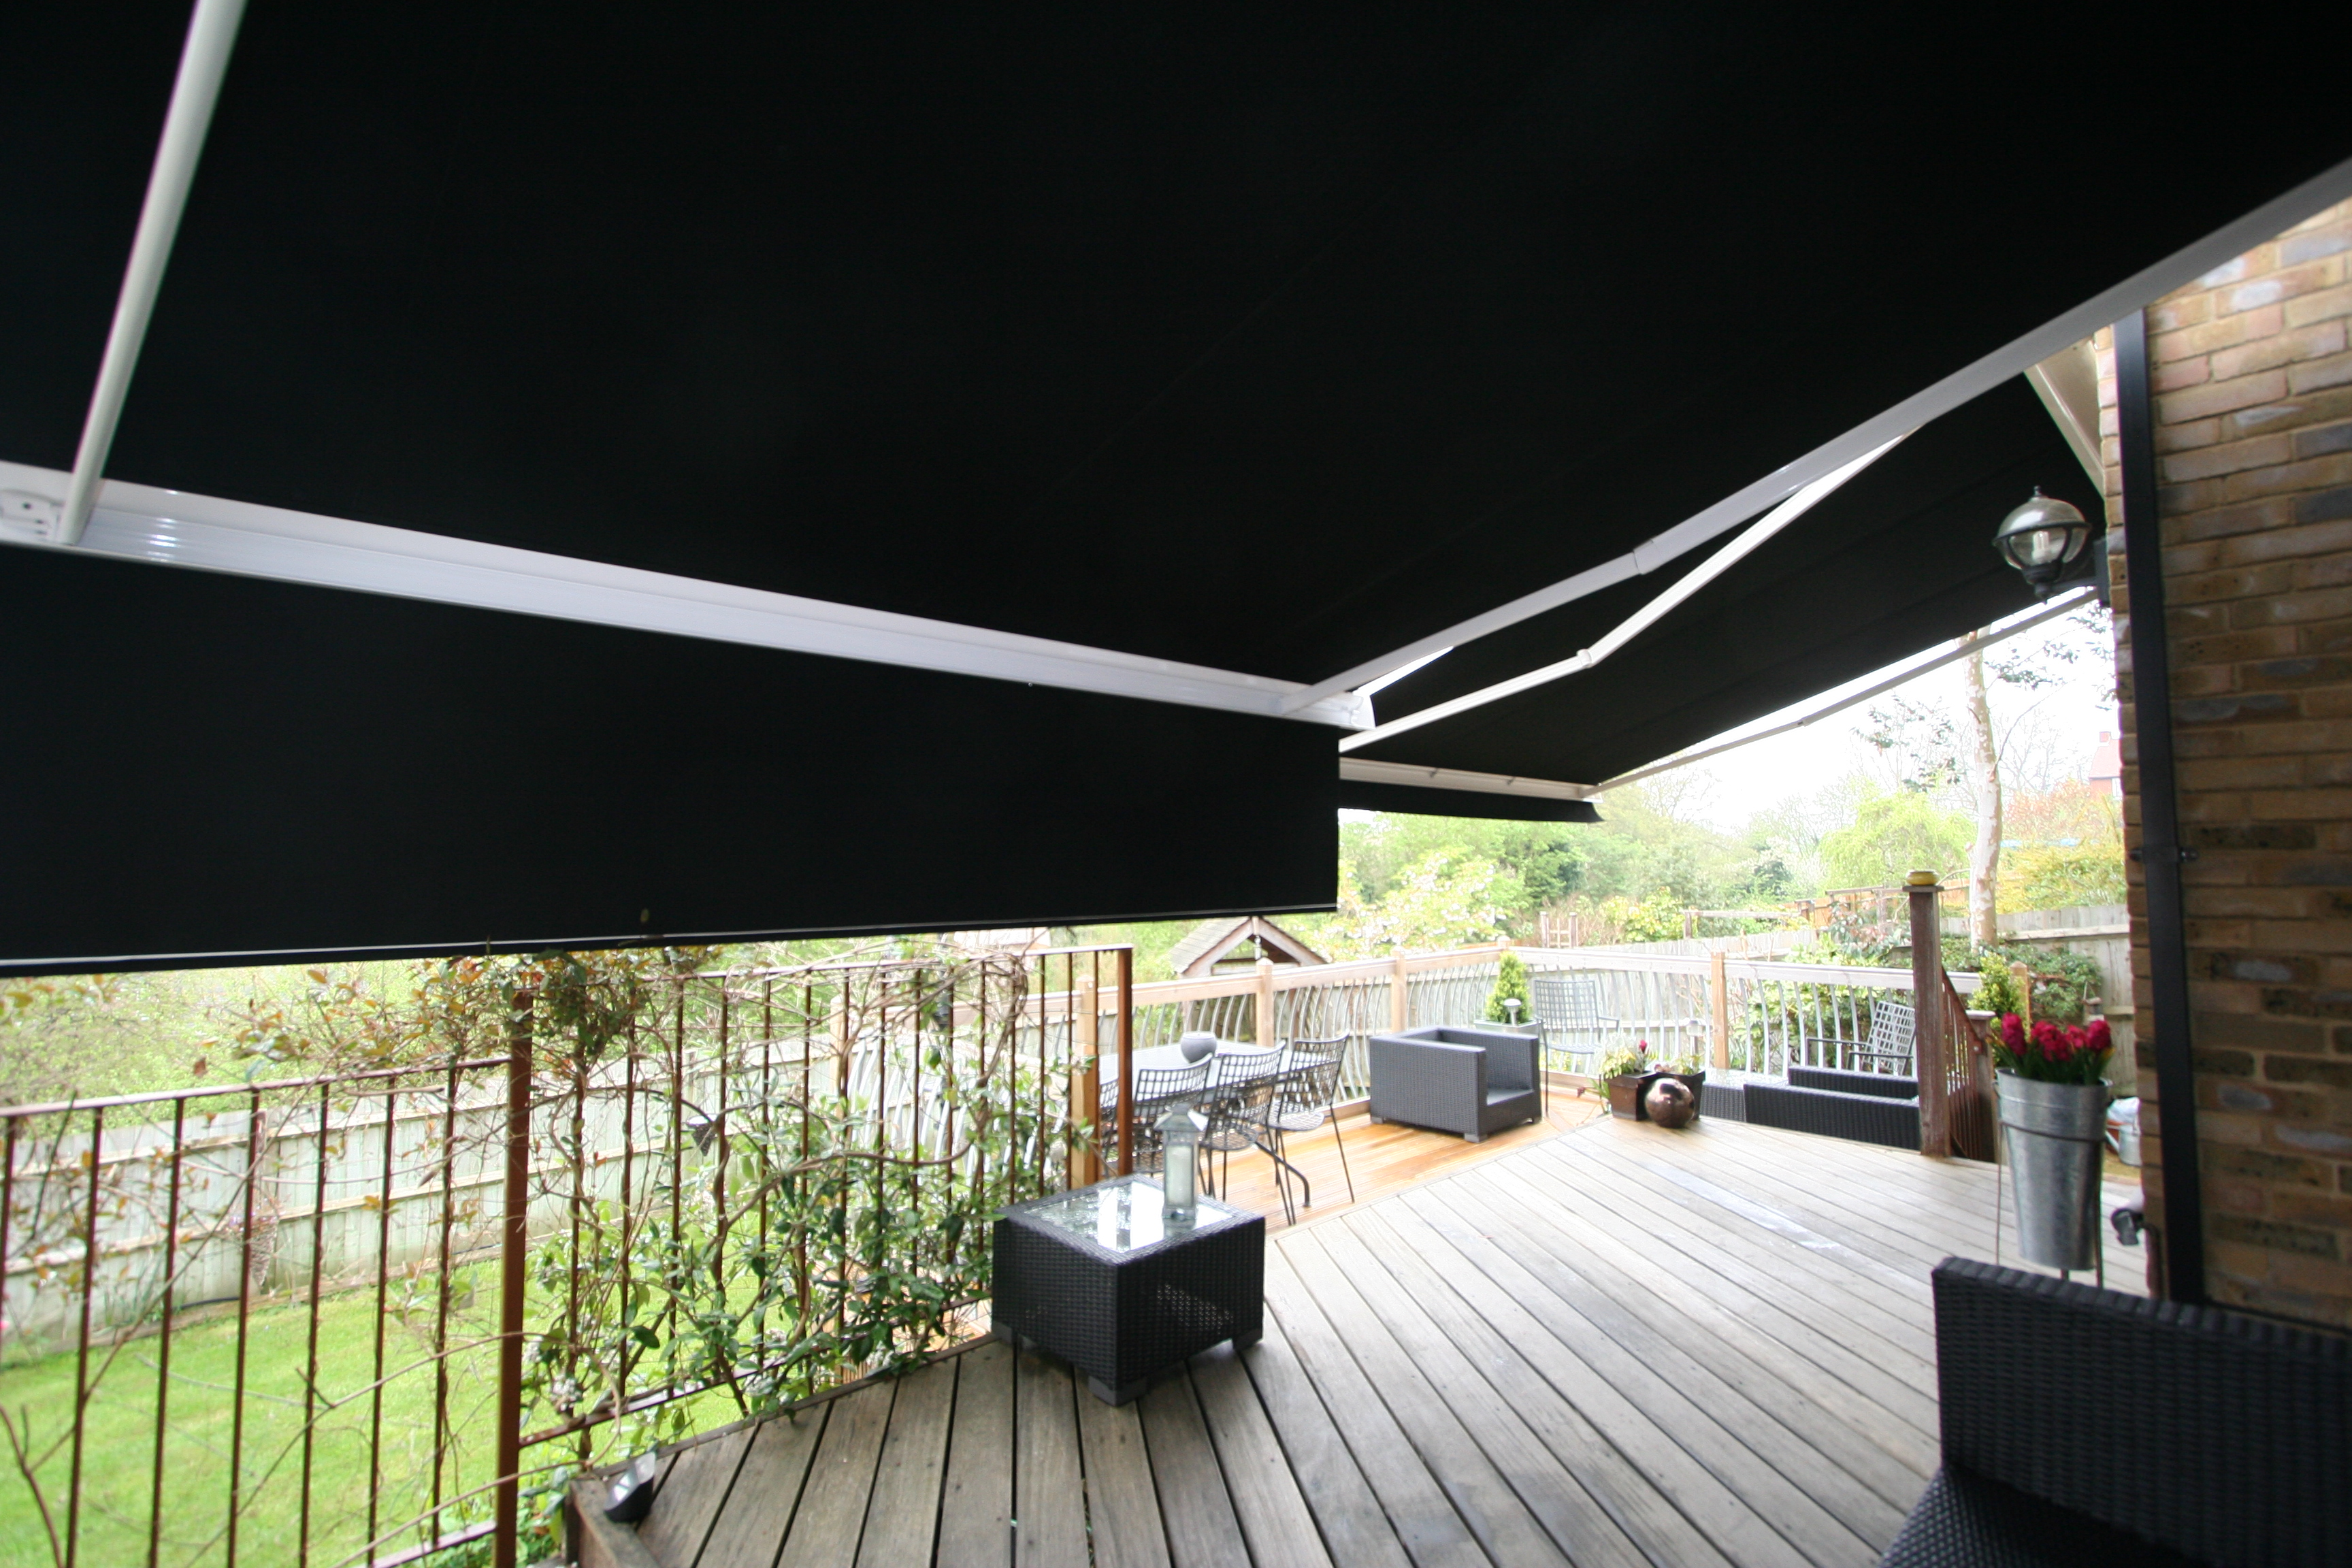 Store Banne Toulon Patio Awning Deep Valance Kover It Blog